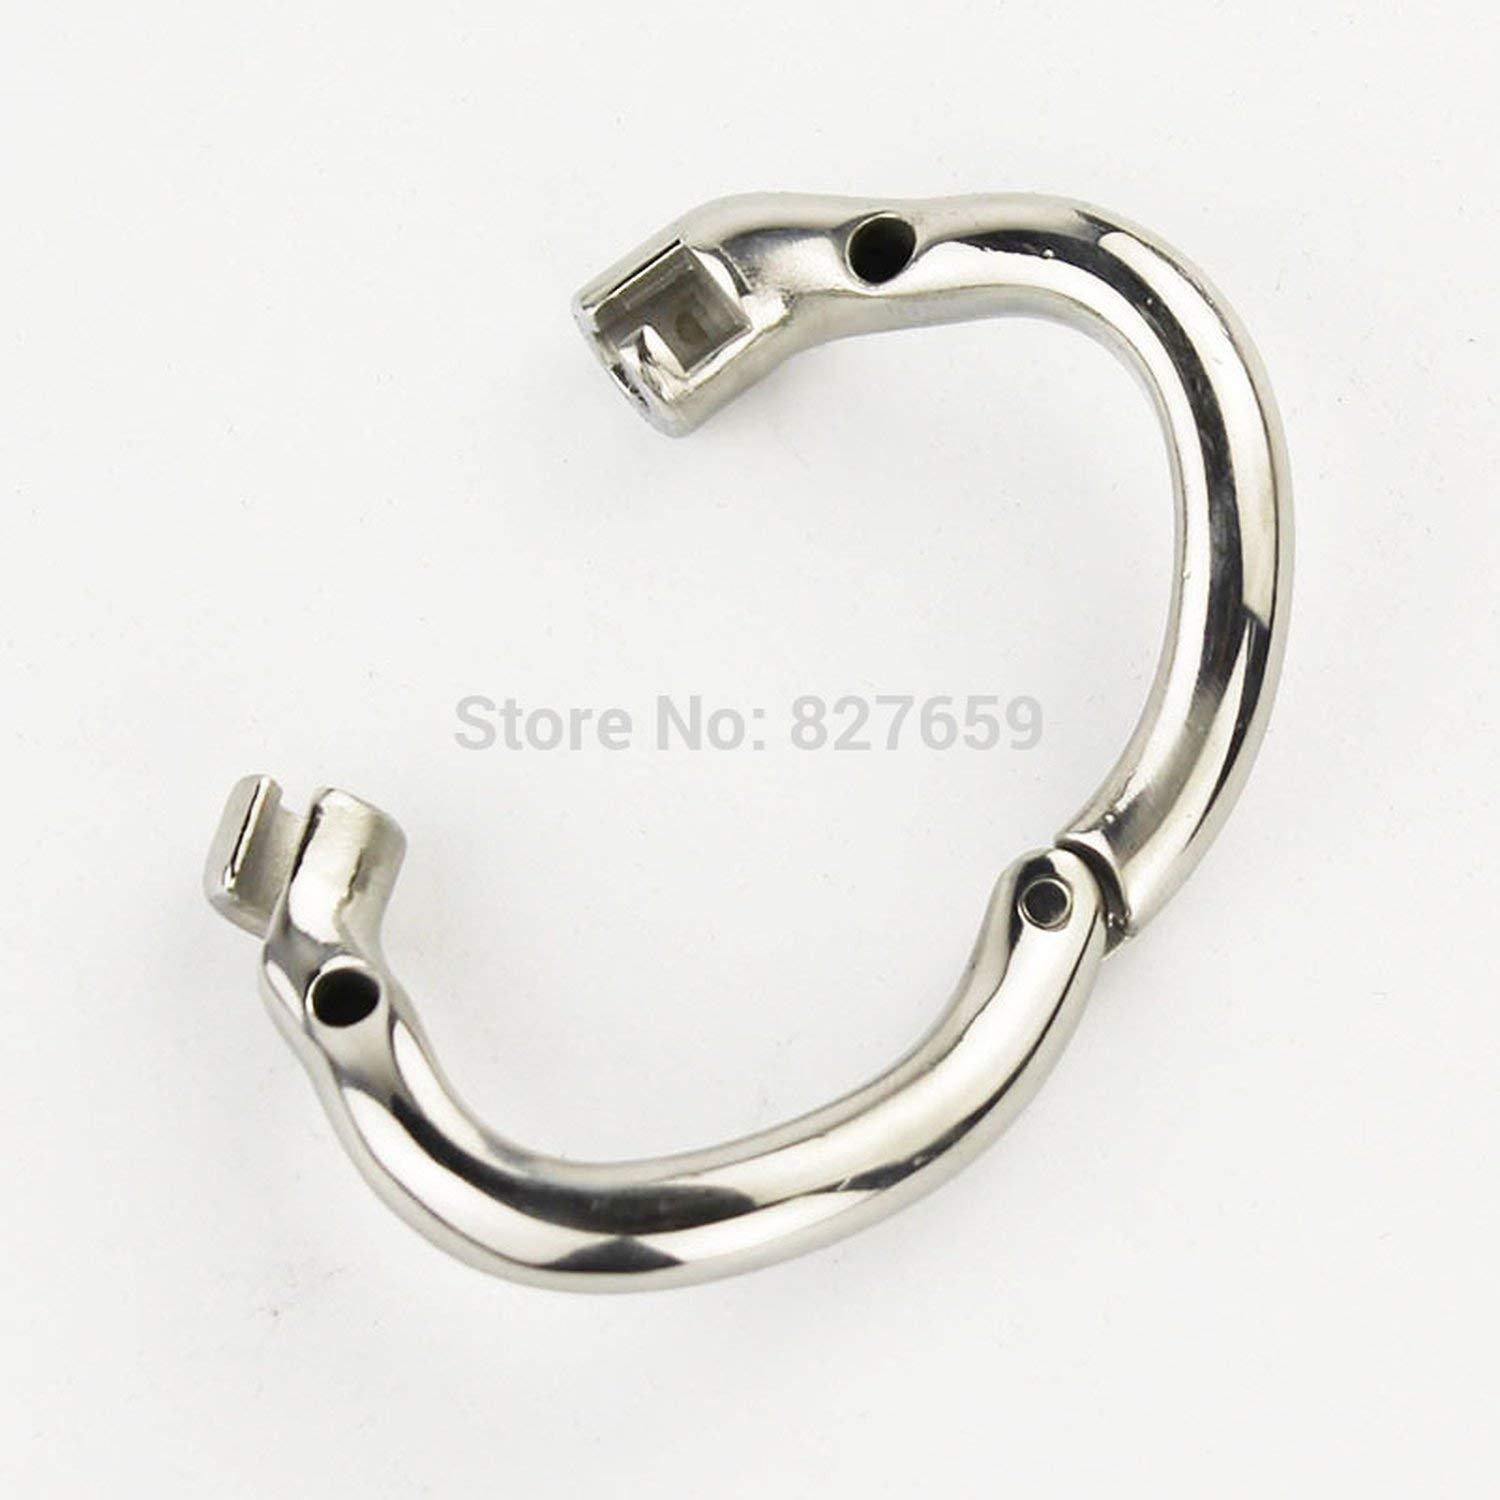 2018 Super Small Male Stainless Steel Cage with with arc-Shaped Ring Men Belt,38mm Ring by Little Sophie (Image #4)